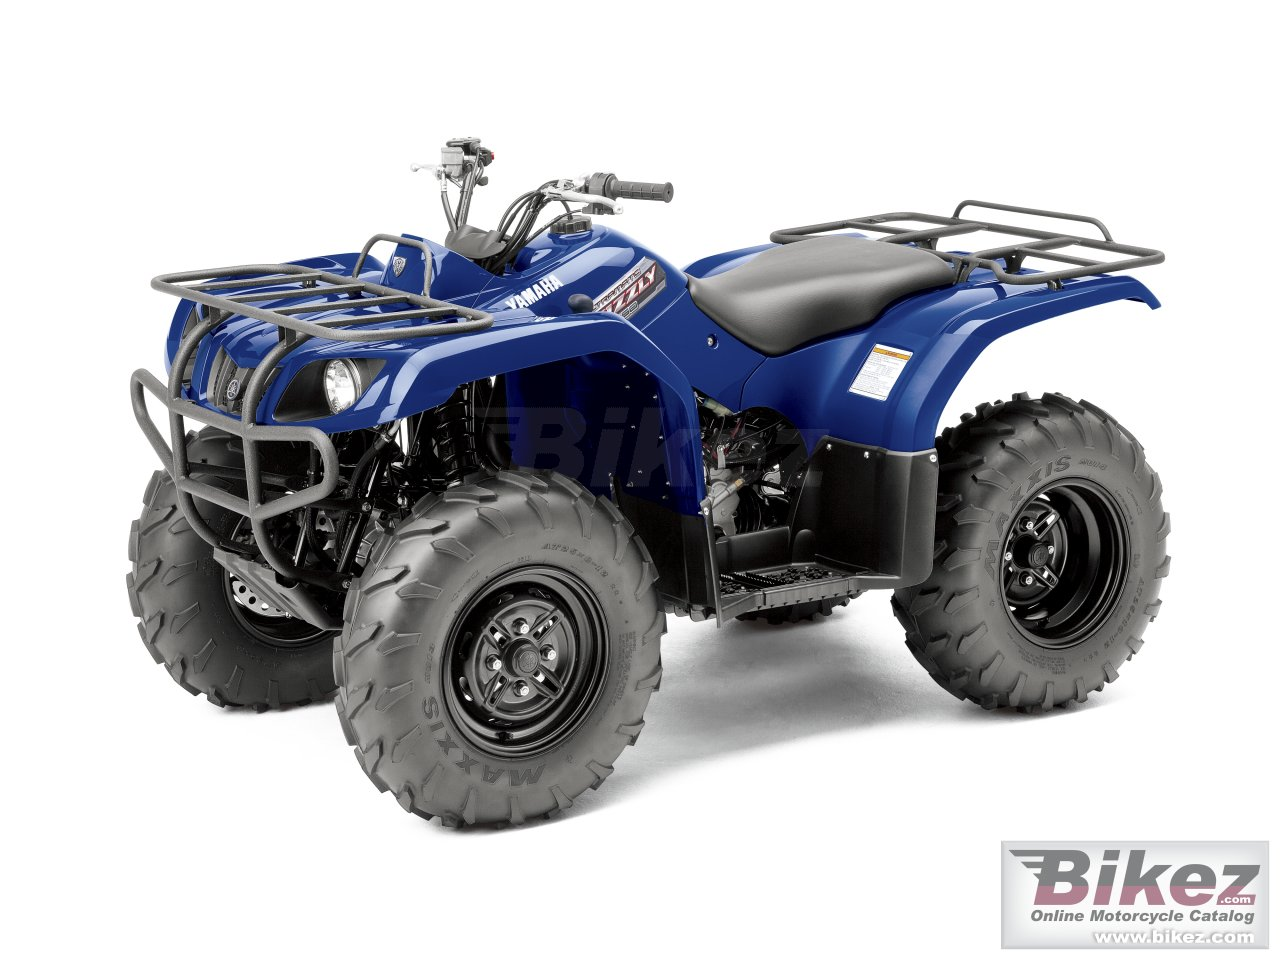 Big Yamaha grizzly 350 auto 4x4 irs picture and wallpaper from Bikez.com